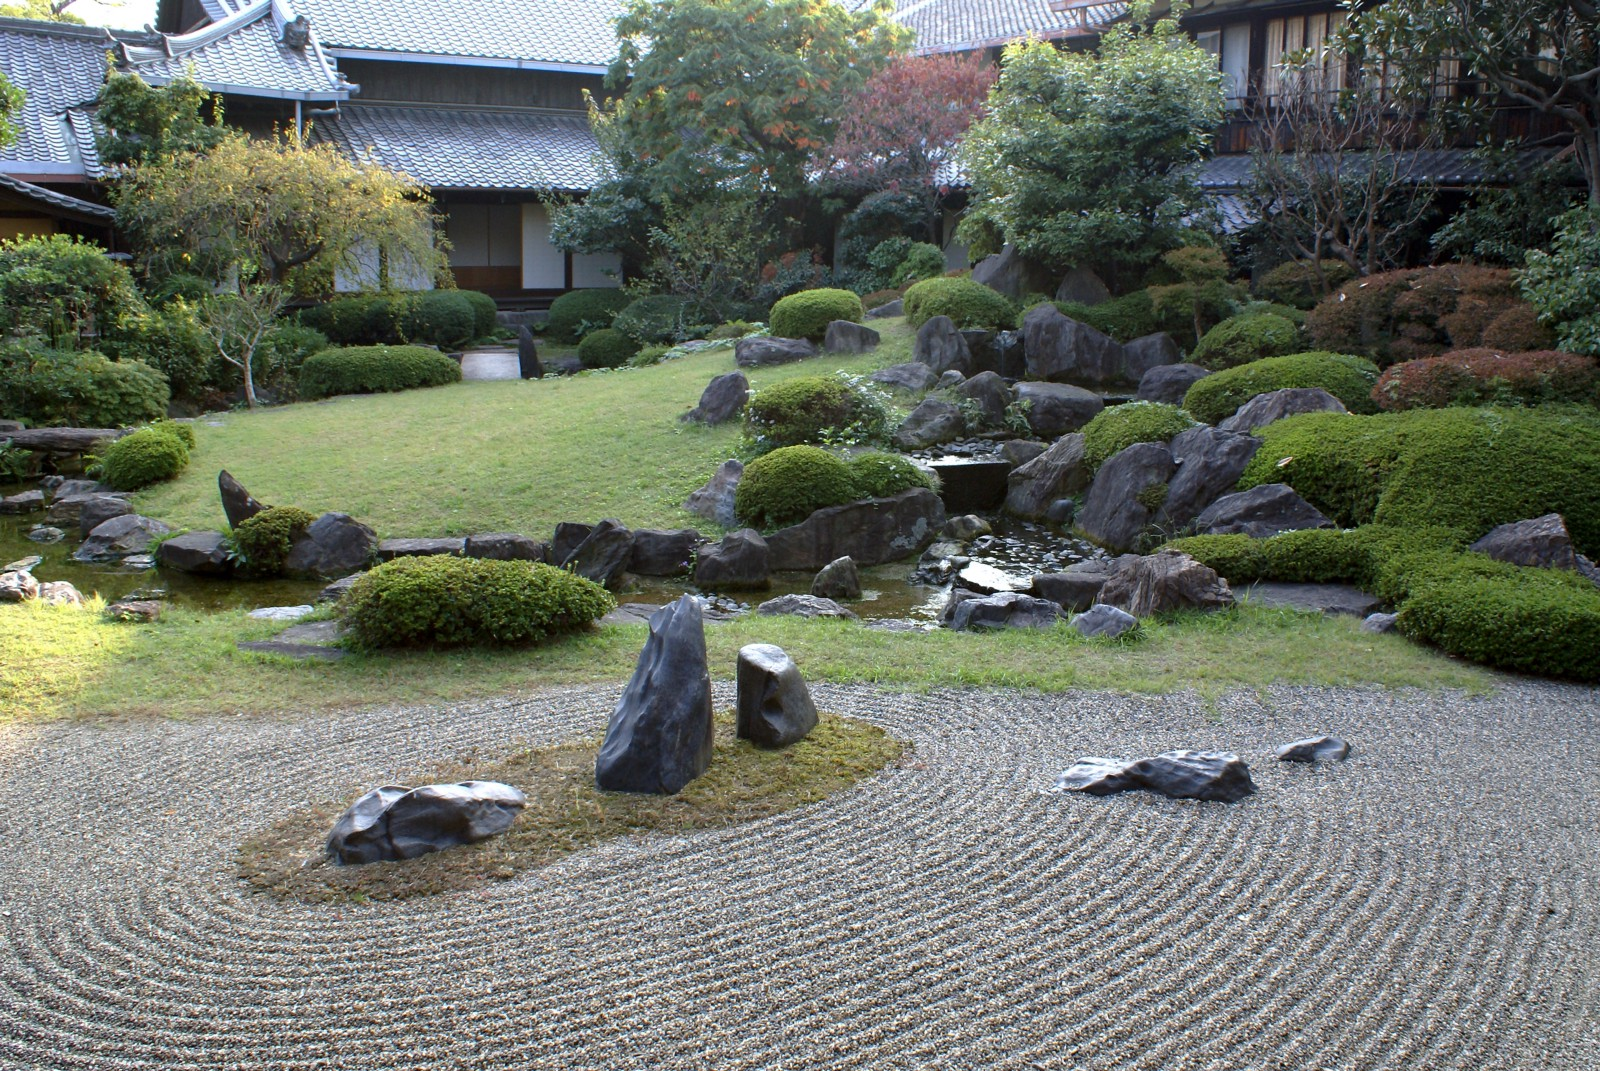 Delightful Just Picture It U2014 Switching From The Crowded Streets Of The City (of  London) To A Serene Zen Garden At Your Backyard. Priceless. So Keep Reading  To See How ... Part 2